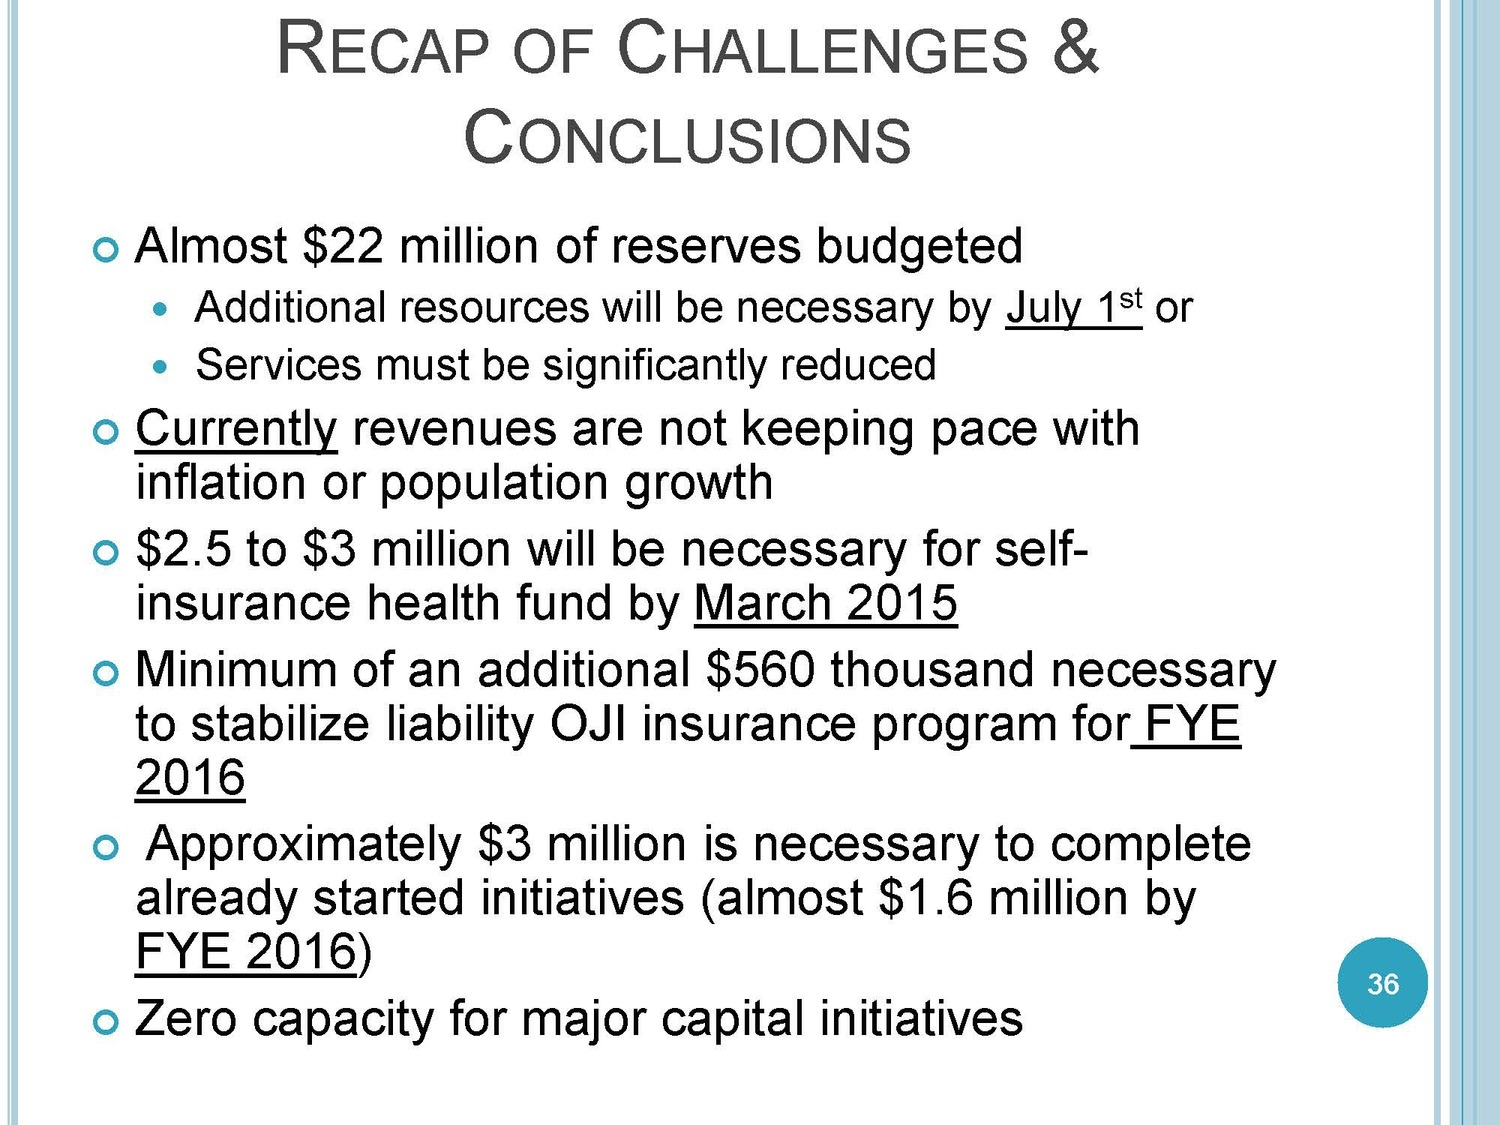 Excerpt from Sumner County Finance Director, David Lawing's presentation delivered at the November 3rd called meetings.